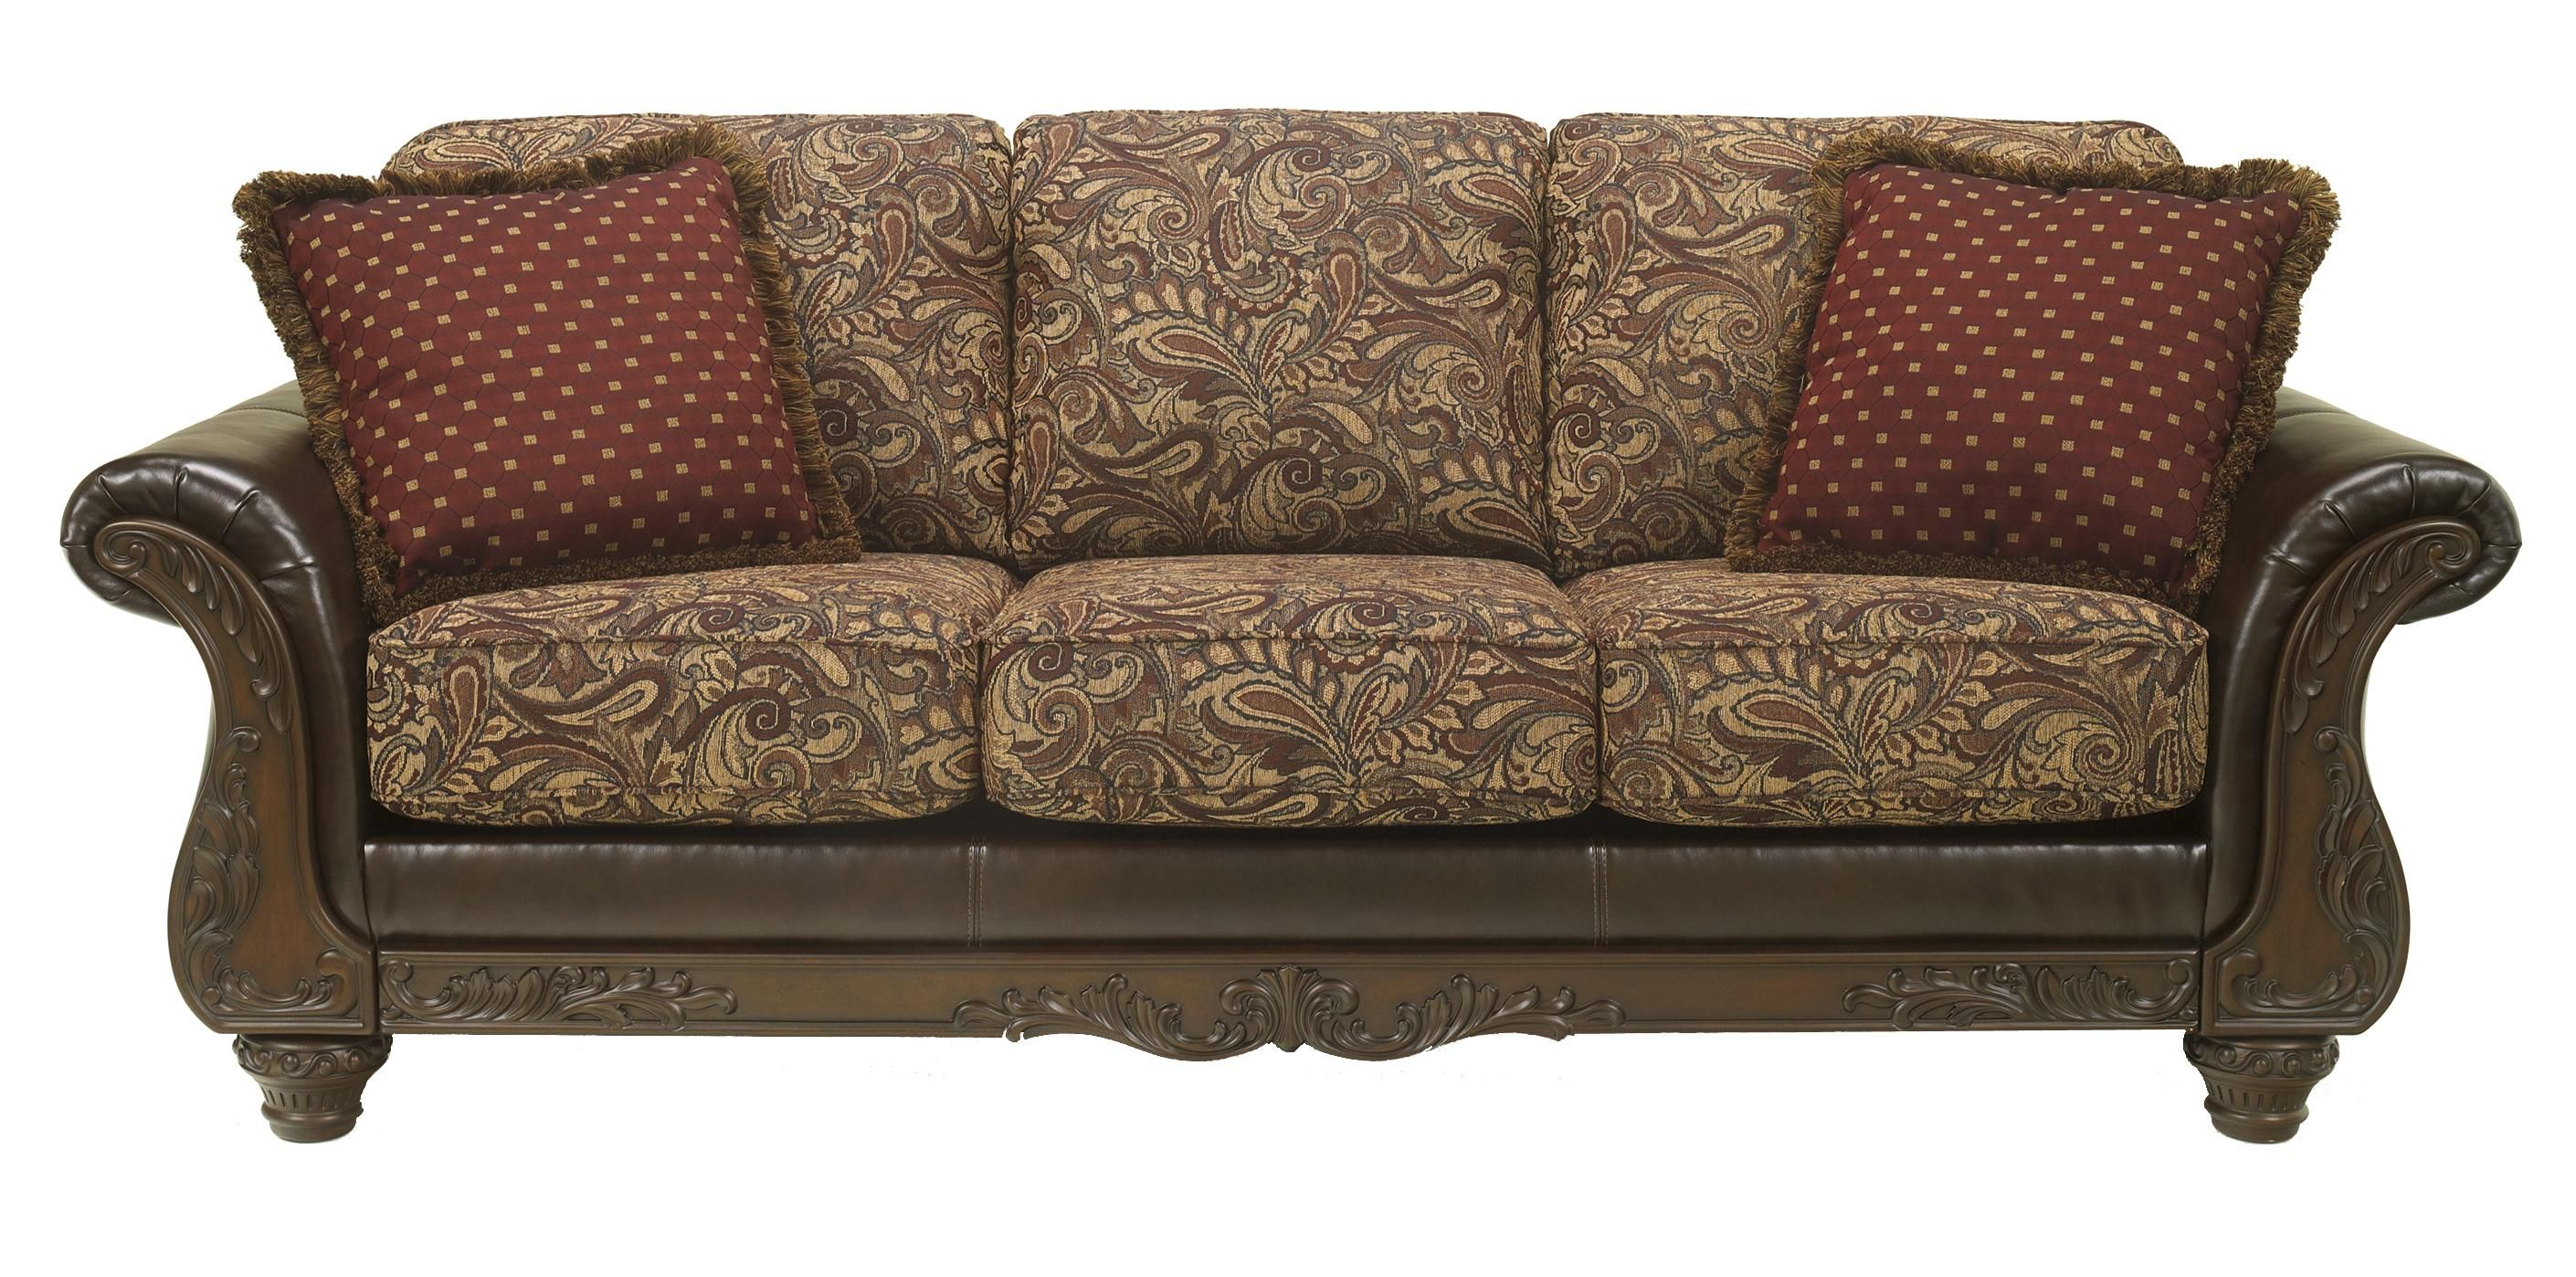 Best Macneill Umber Sofa By Benchcraft 720 Traditional Living Room Furniture Furniture Sofa 400 x 300